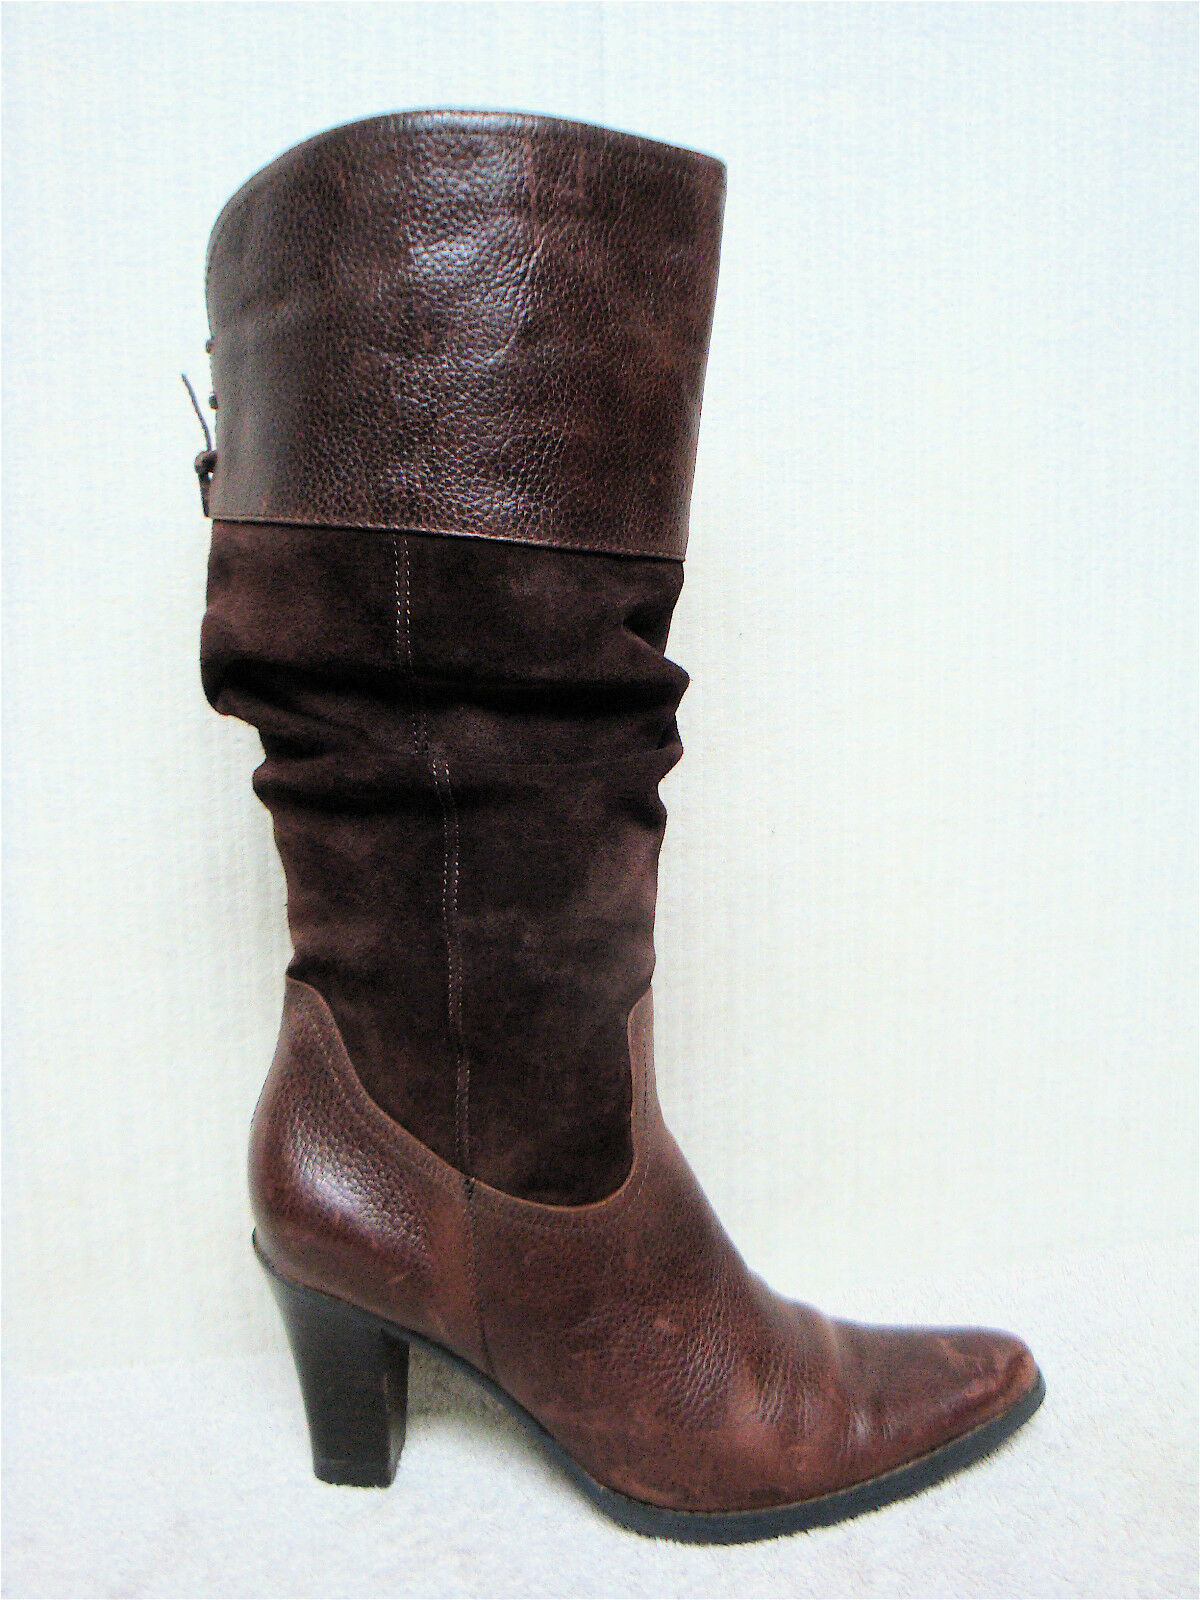 A.N.A - A NEW APPROACH -Women's Brown Suede Leather Western Cowboy Boots -Size 6